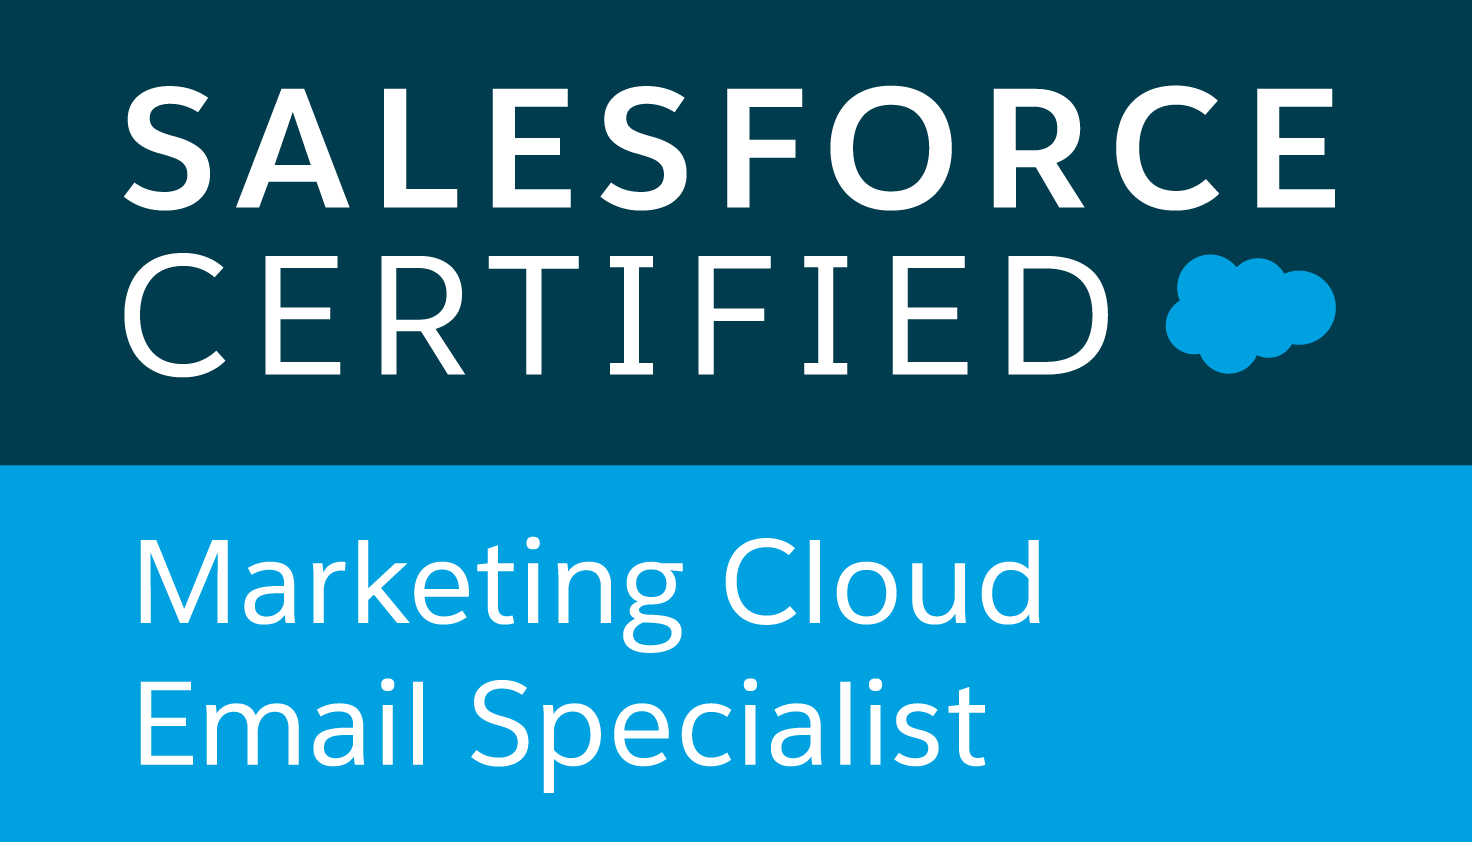 certificacion salesforce marketing cloud